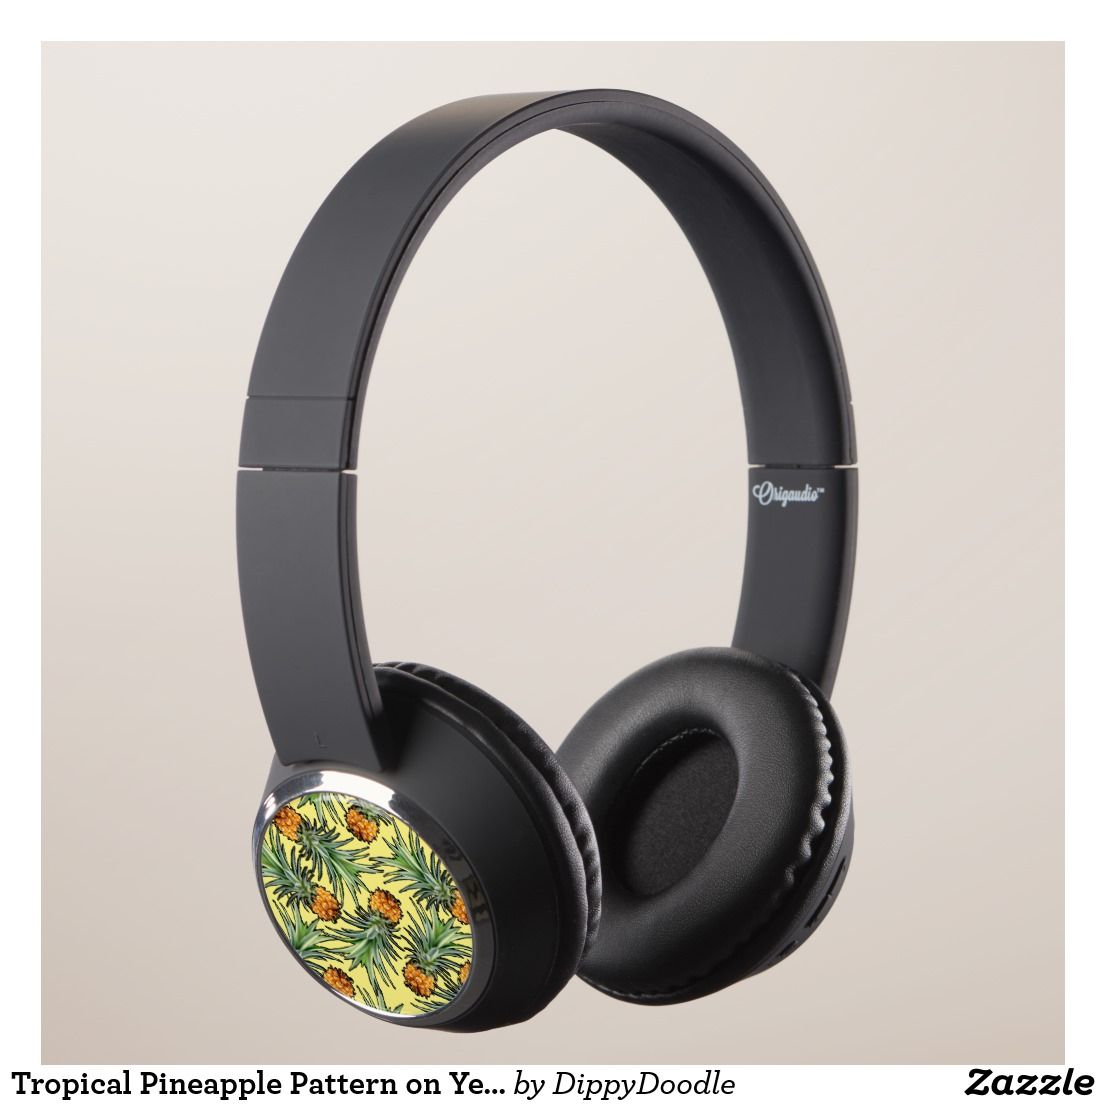 c096f43835a Tropical Pineapple Pattern on Yellow Headphones | Zazzle.com ...